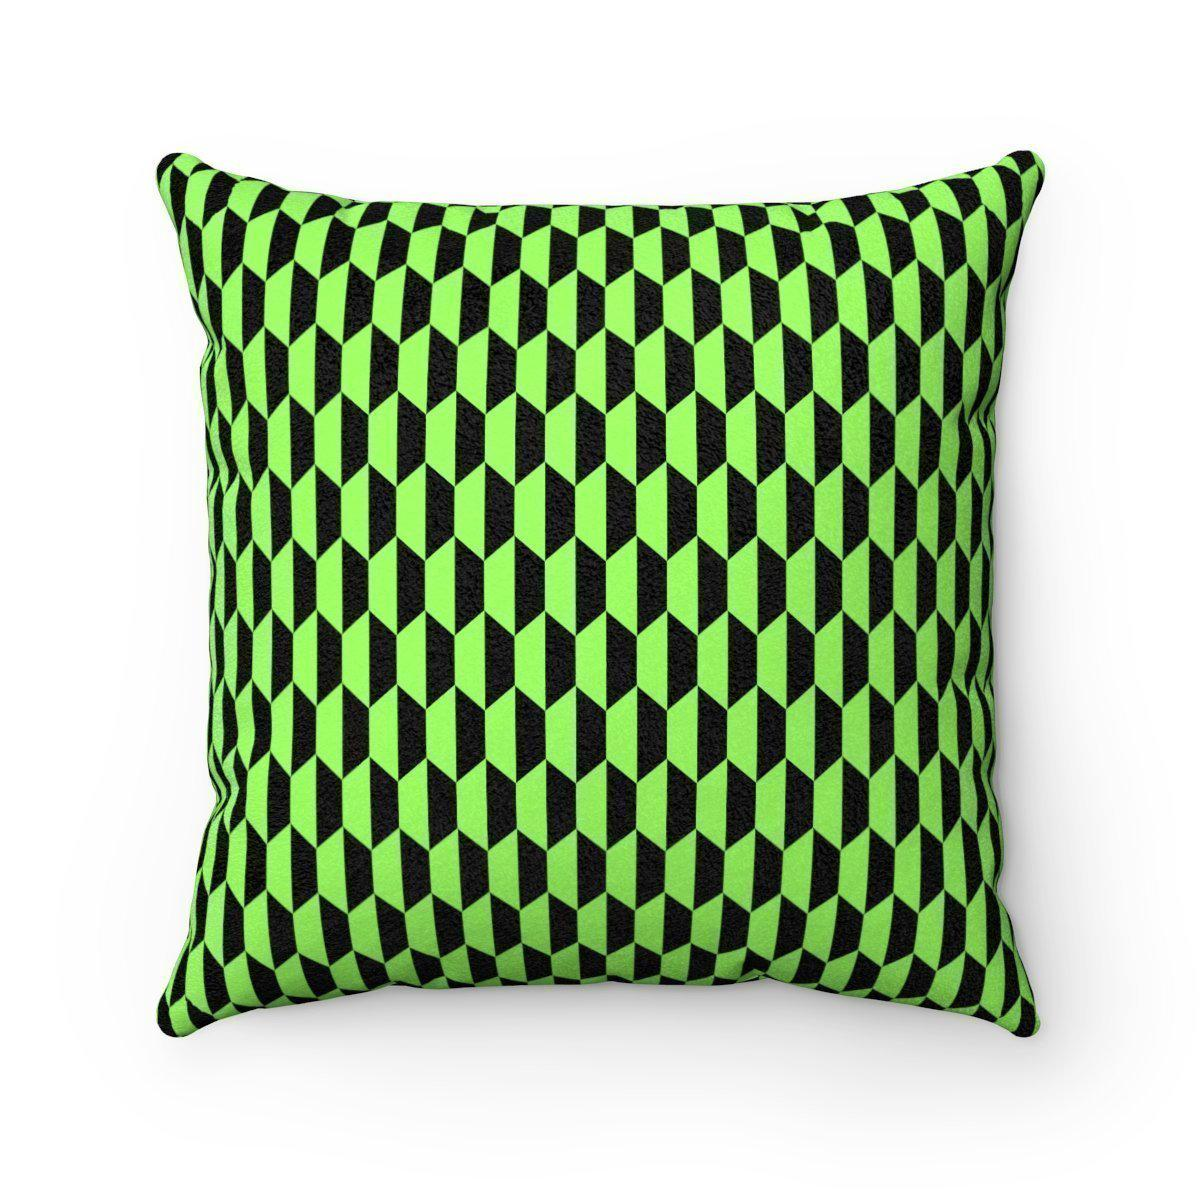 Geometric animal-friendly microfiber decorative pillow w/insert-Home Decor - Decorative Accents - Pillows & Throws - Decorative Pillows-Maison d'Elite-14x14-Très Elite